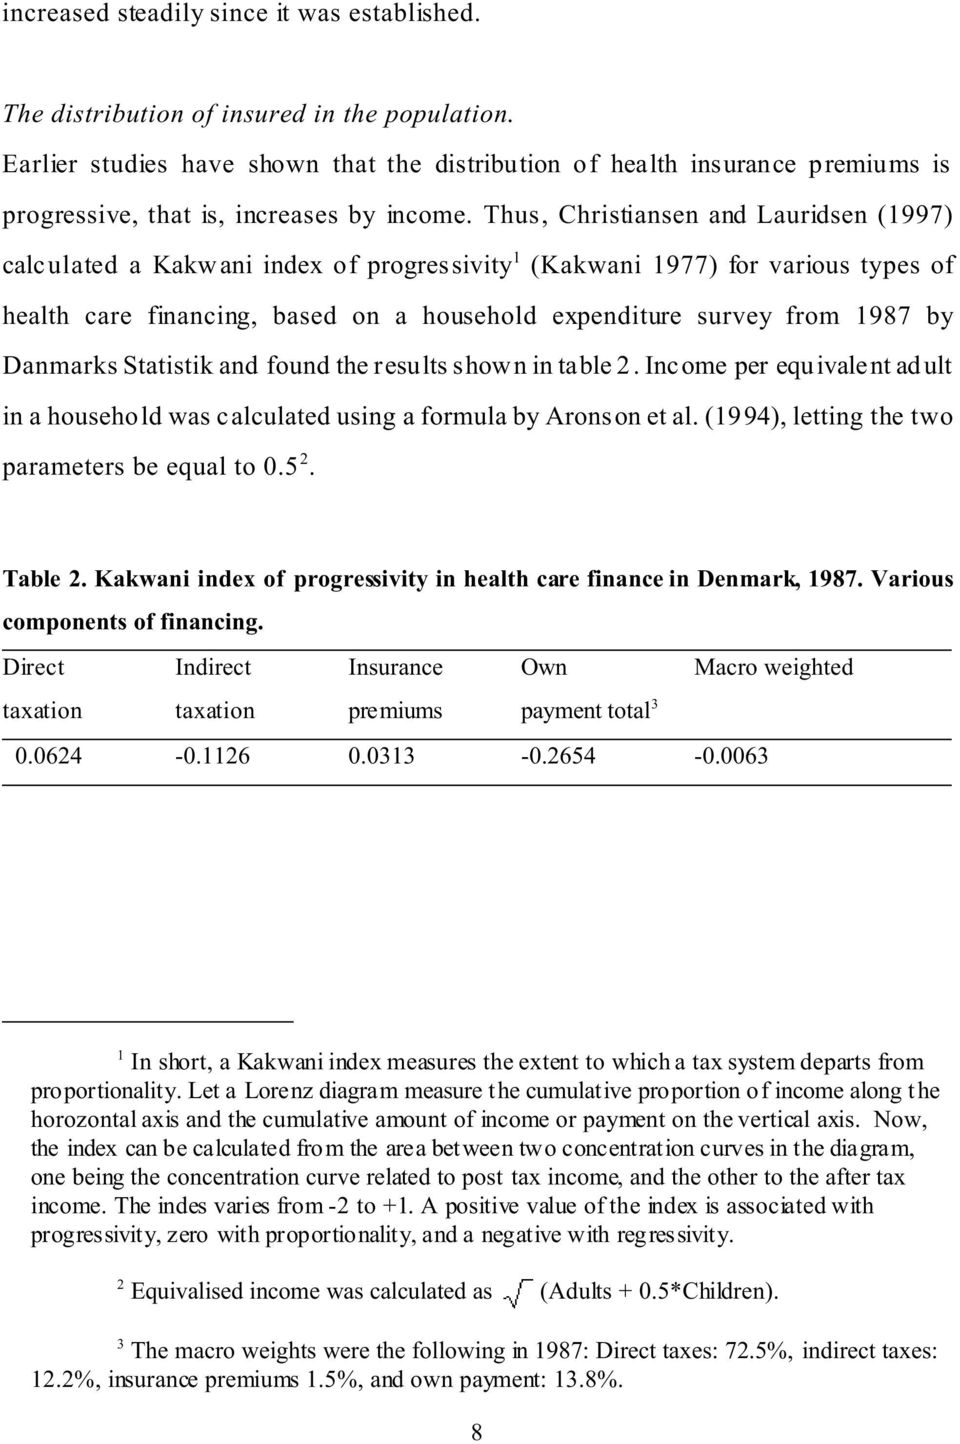 Thus, Christiansen and Lauridsen (1997) calculated a Kakwani index of progressivity 1 (Kakwani 1977) for various types of health care financing, based on a household expenditure survey from 1987 by